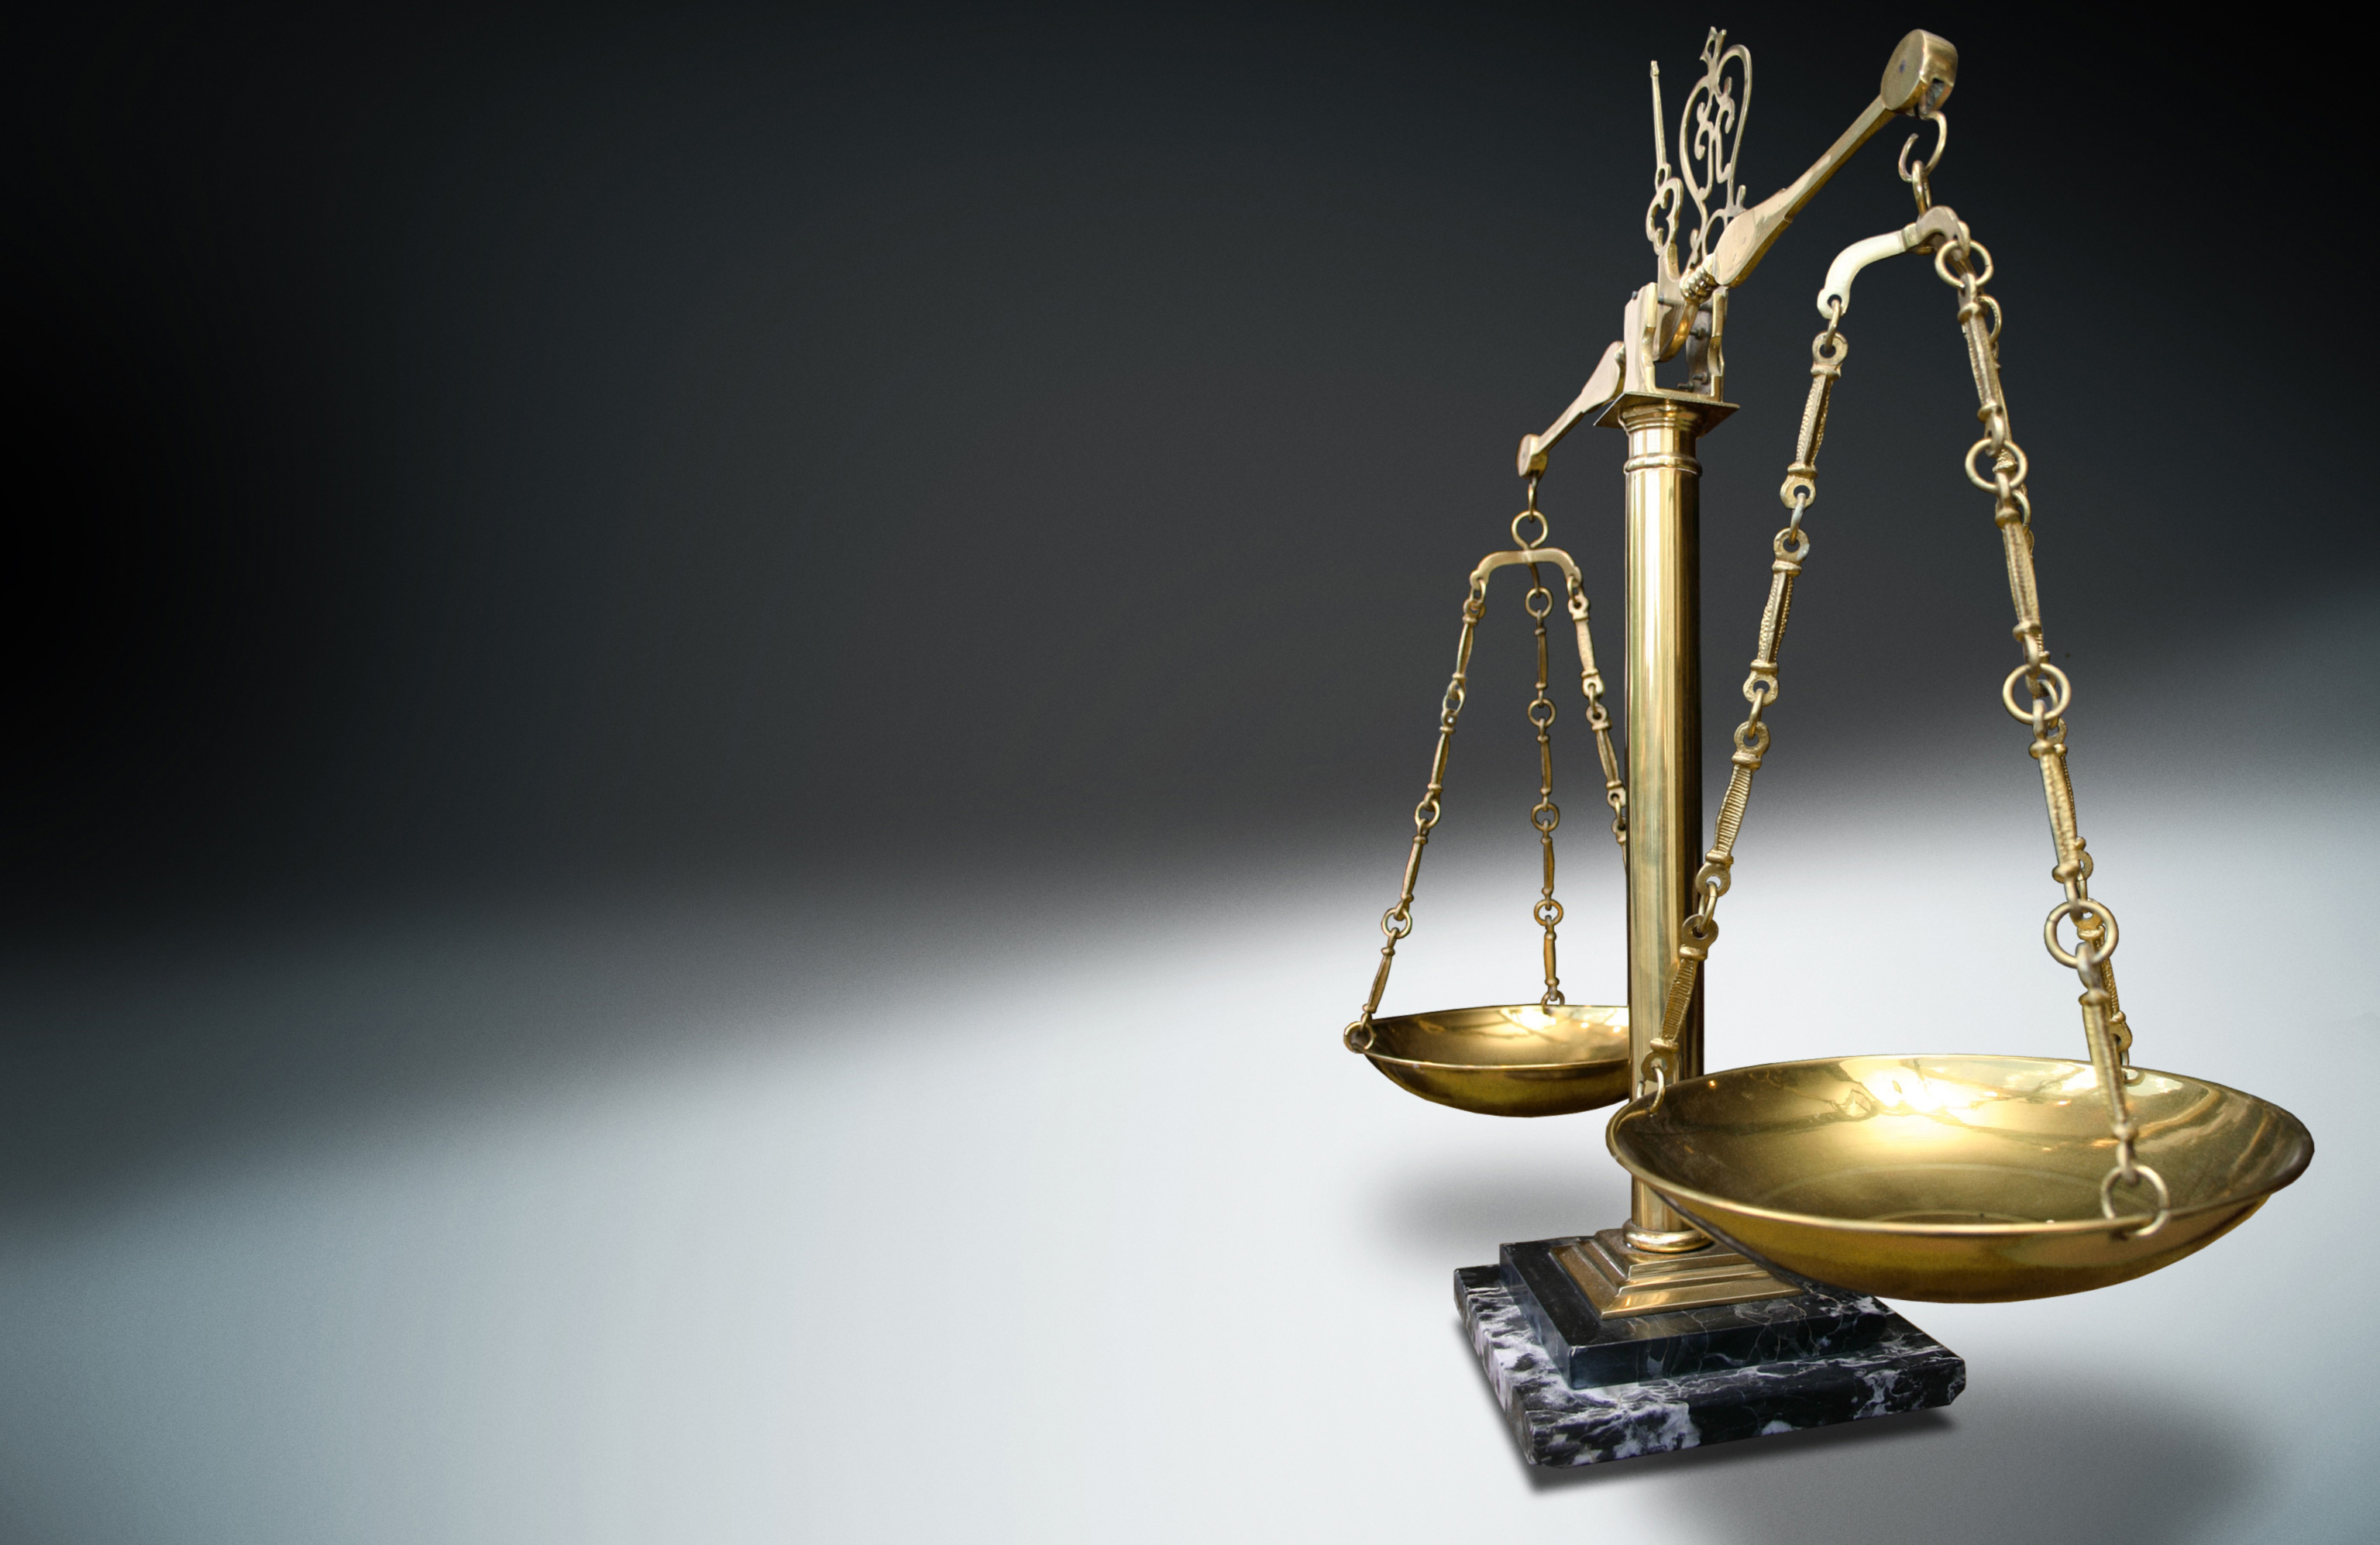 legal scales powers law